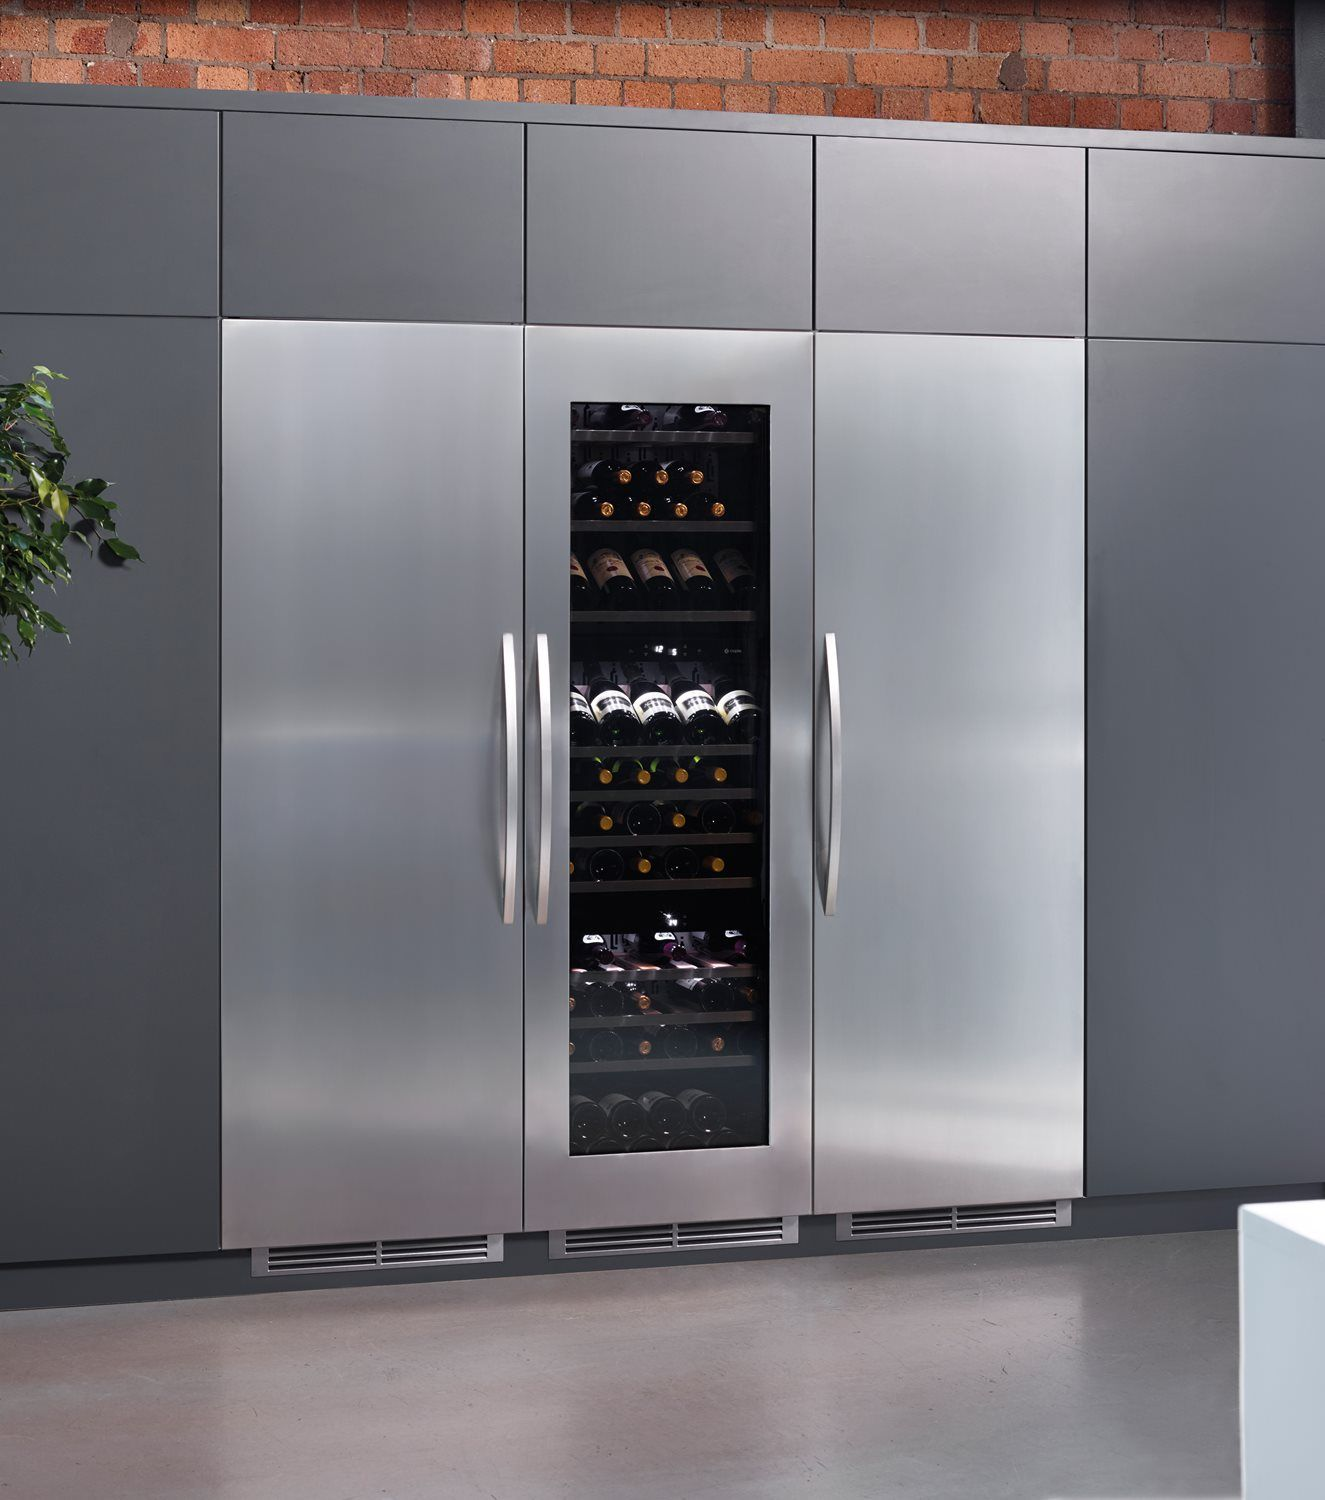 Caple Wc179 Ril1795 Rif1795 Integrated Wine Cooler Fridge And Freezer Pack Comprises Of Caple W Built In Fridge Freezer Glass Shelves Kitchen Glass Shelves